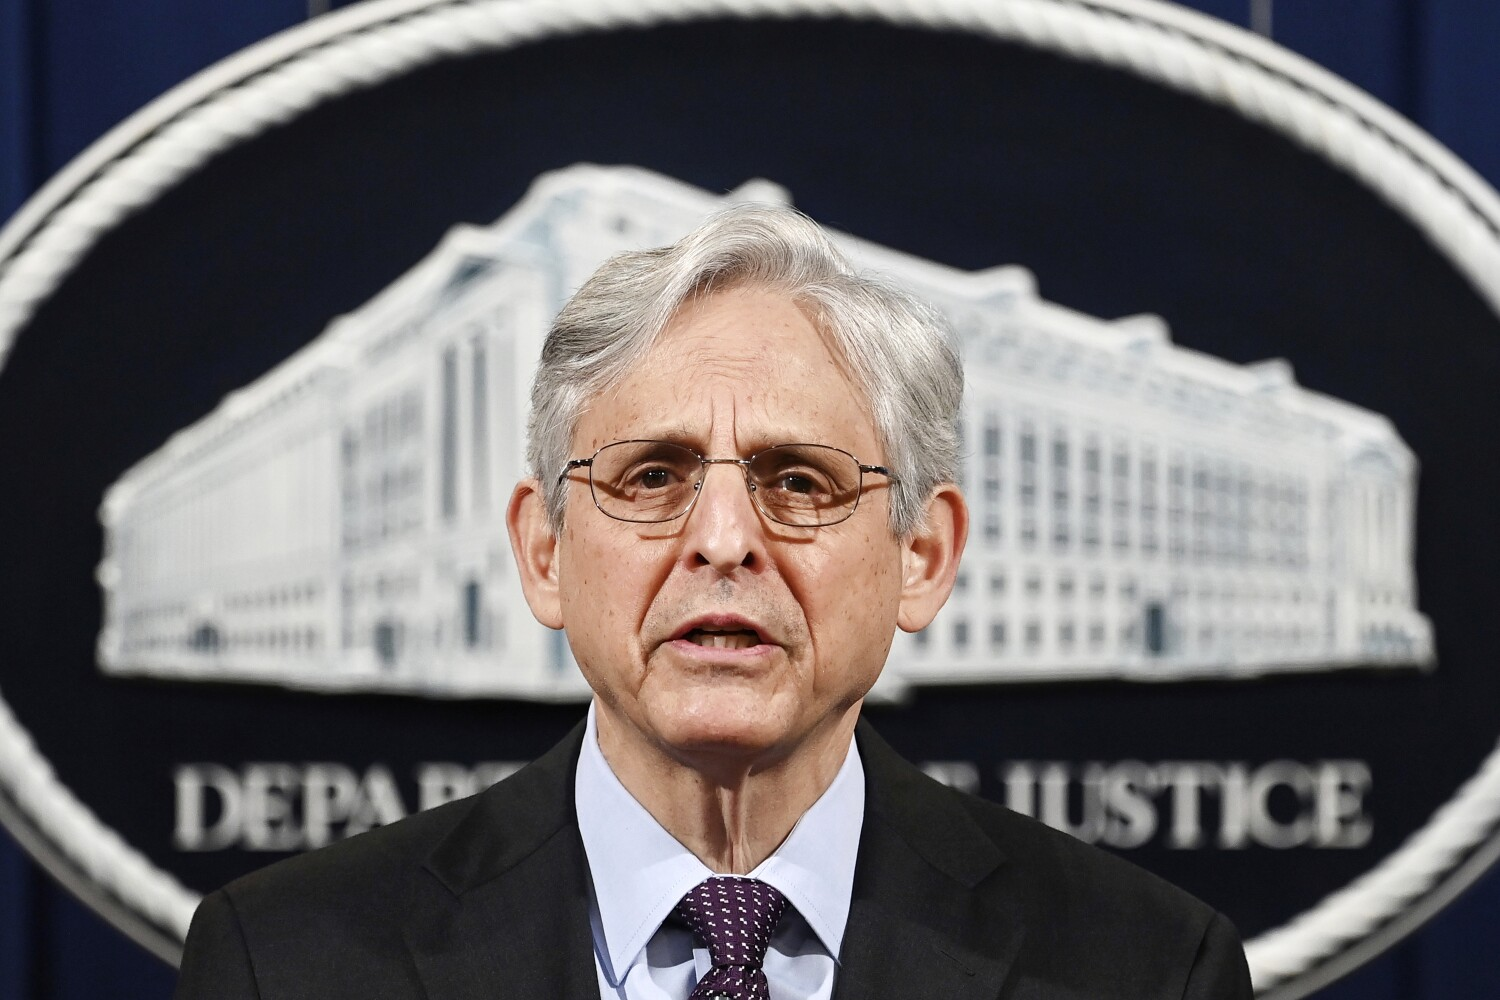 Justice Department to boost resources to fight hate crimes, attorney general says